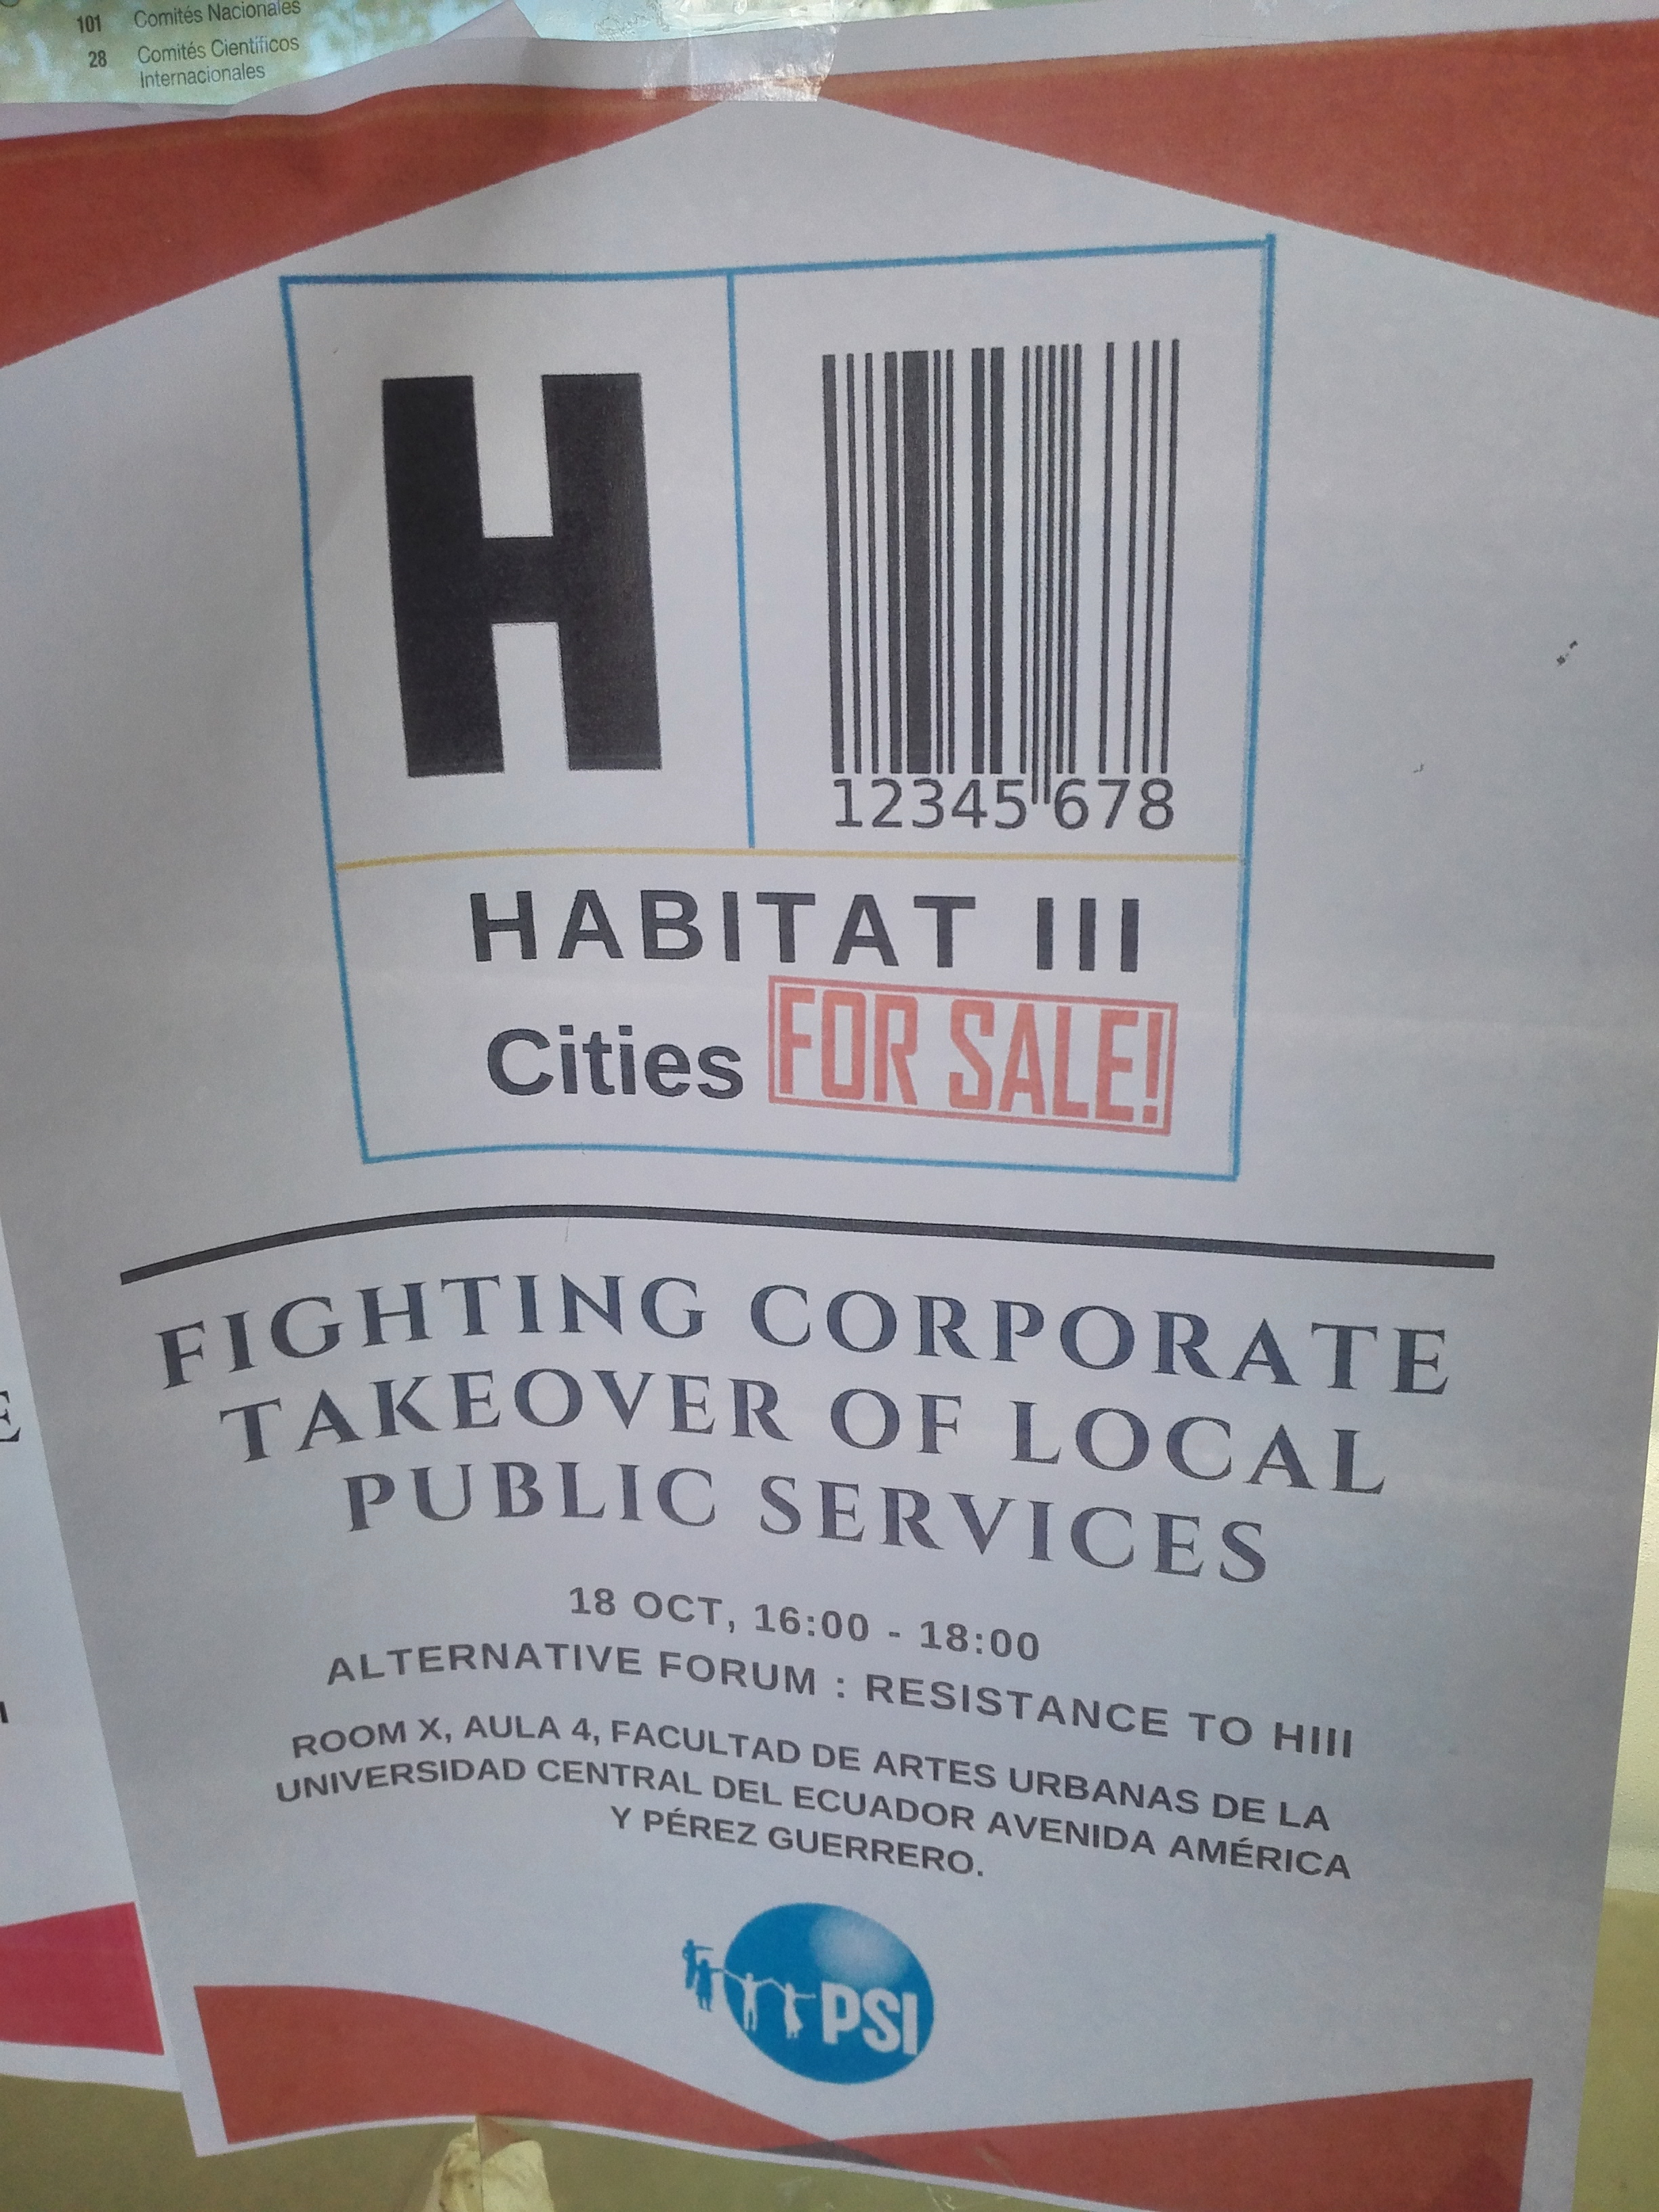 A different take on the official Habitat III logo...